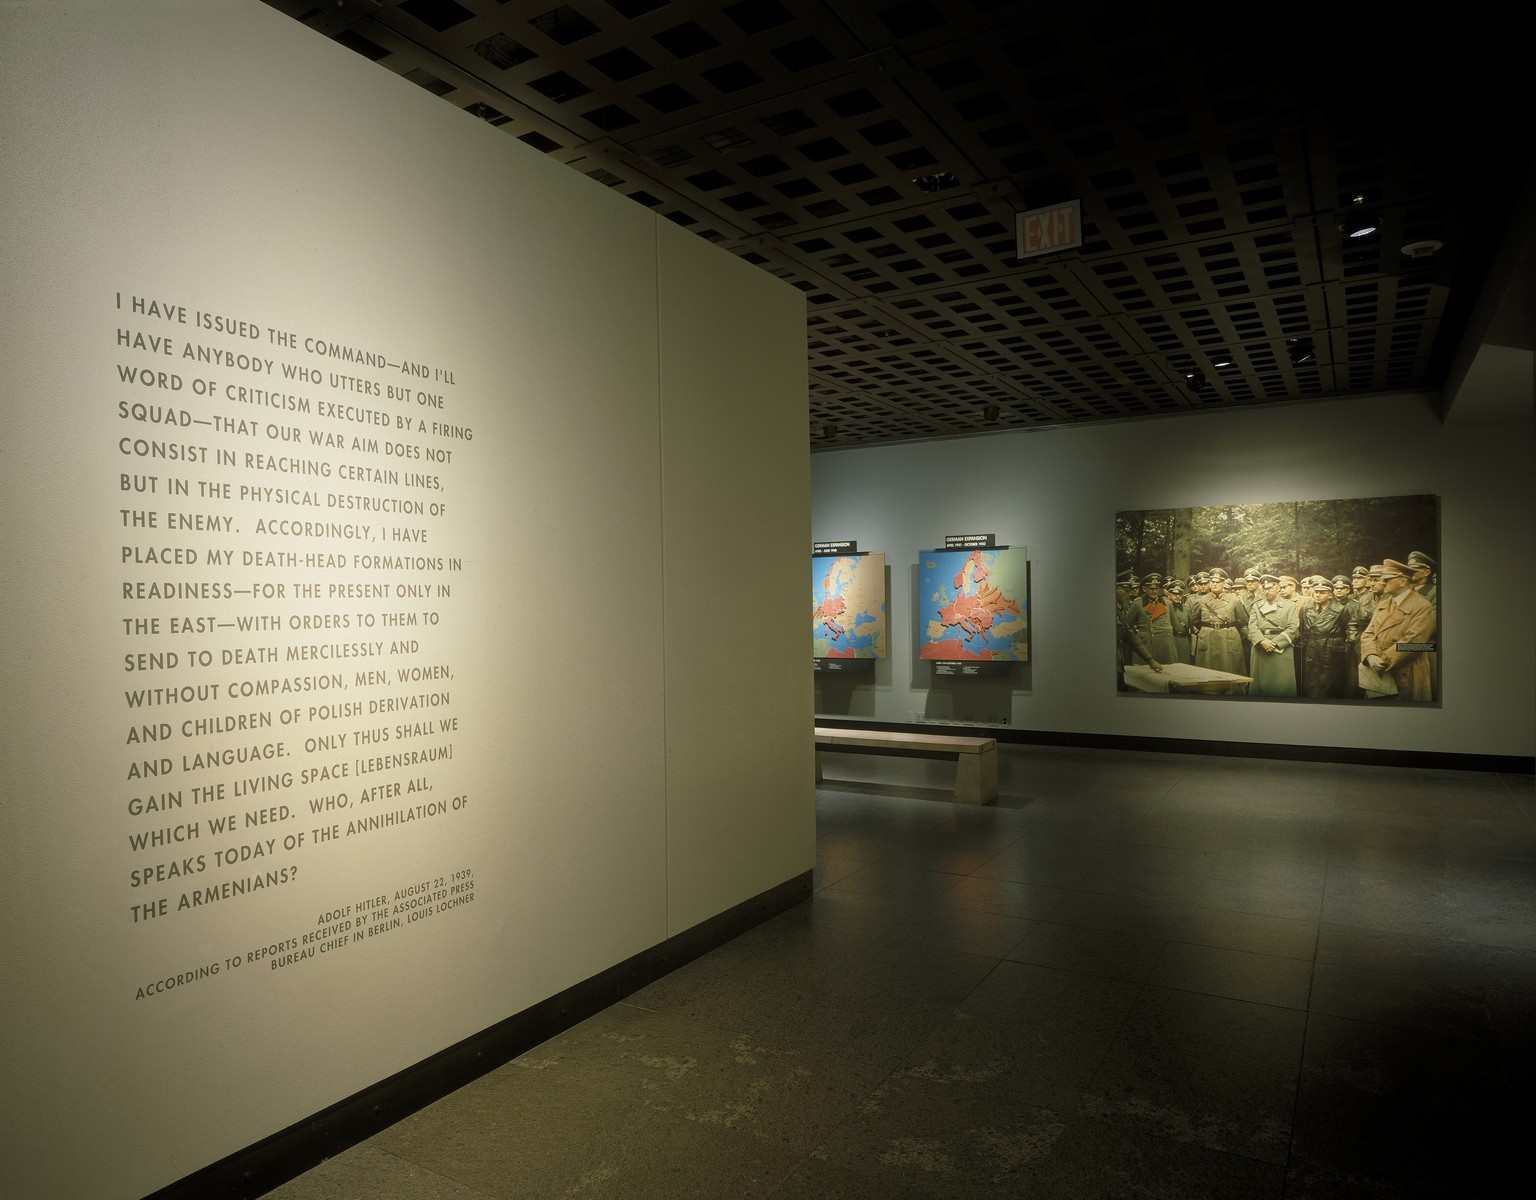 View of the concluding section of fourth floor of the permanent exhibition at the U.S. Holocaust Memorial Museum.  This section features the quote attributed to Adolf Hitler regarding his war aims, maps of the German territorial conquest and a photo mural of Hitler with General Wilhelm Keitel at the Westwall.